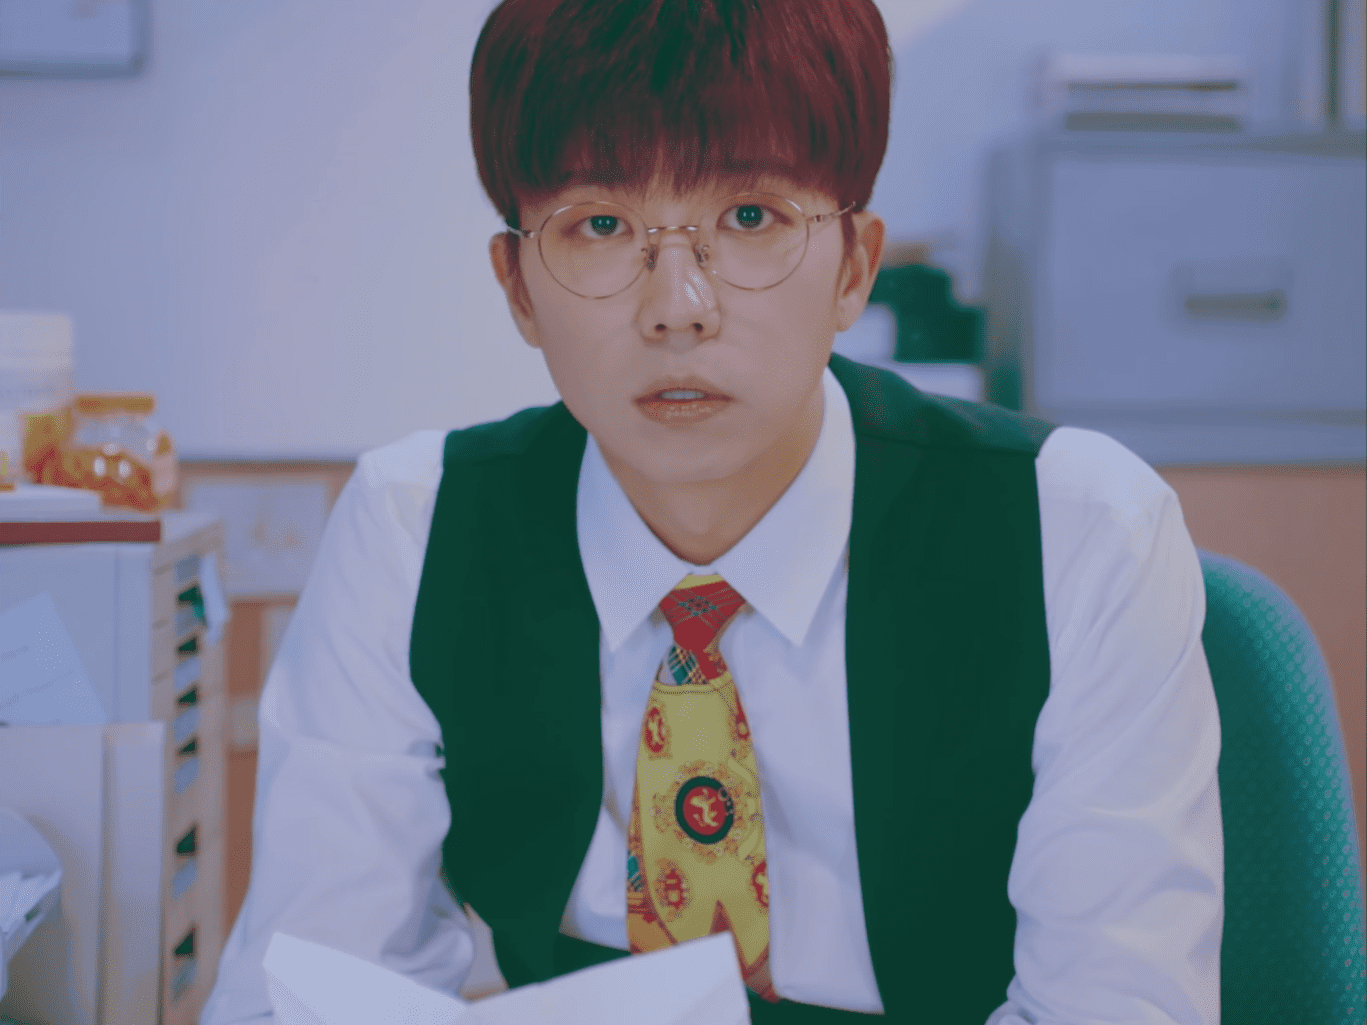 Update: 2PM's Wooyoung Drops MV Teaser For Upcoming Solo Comeback